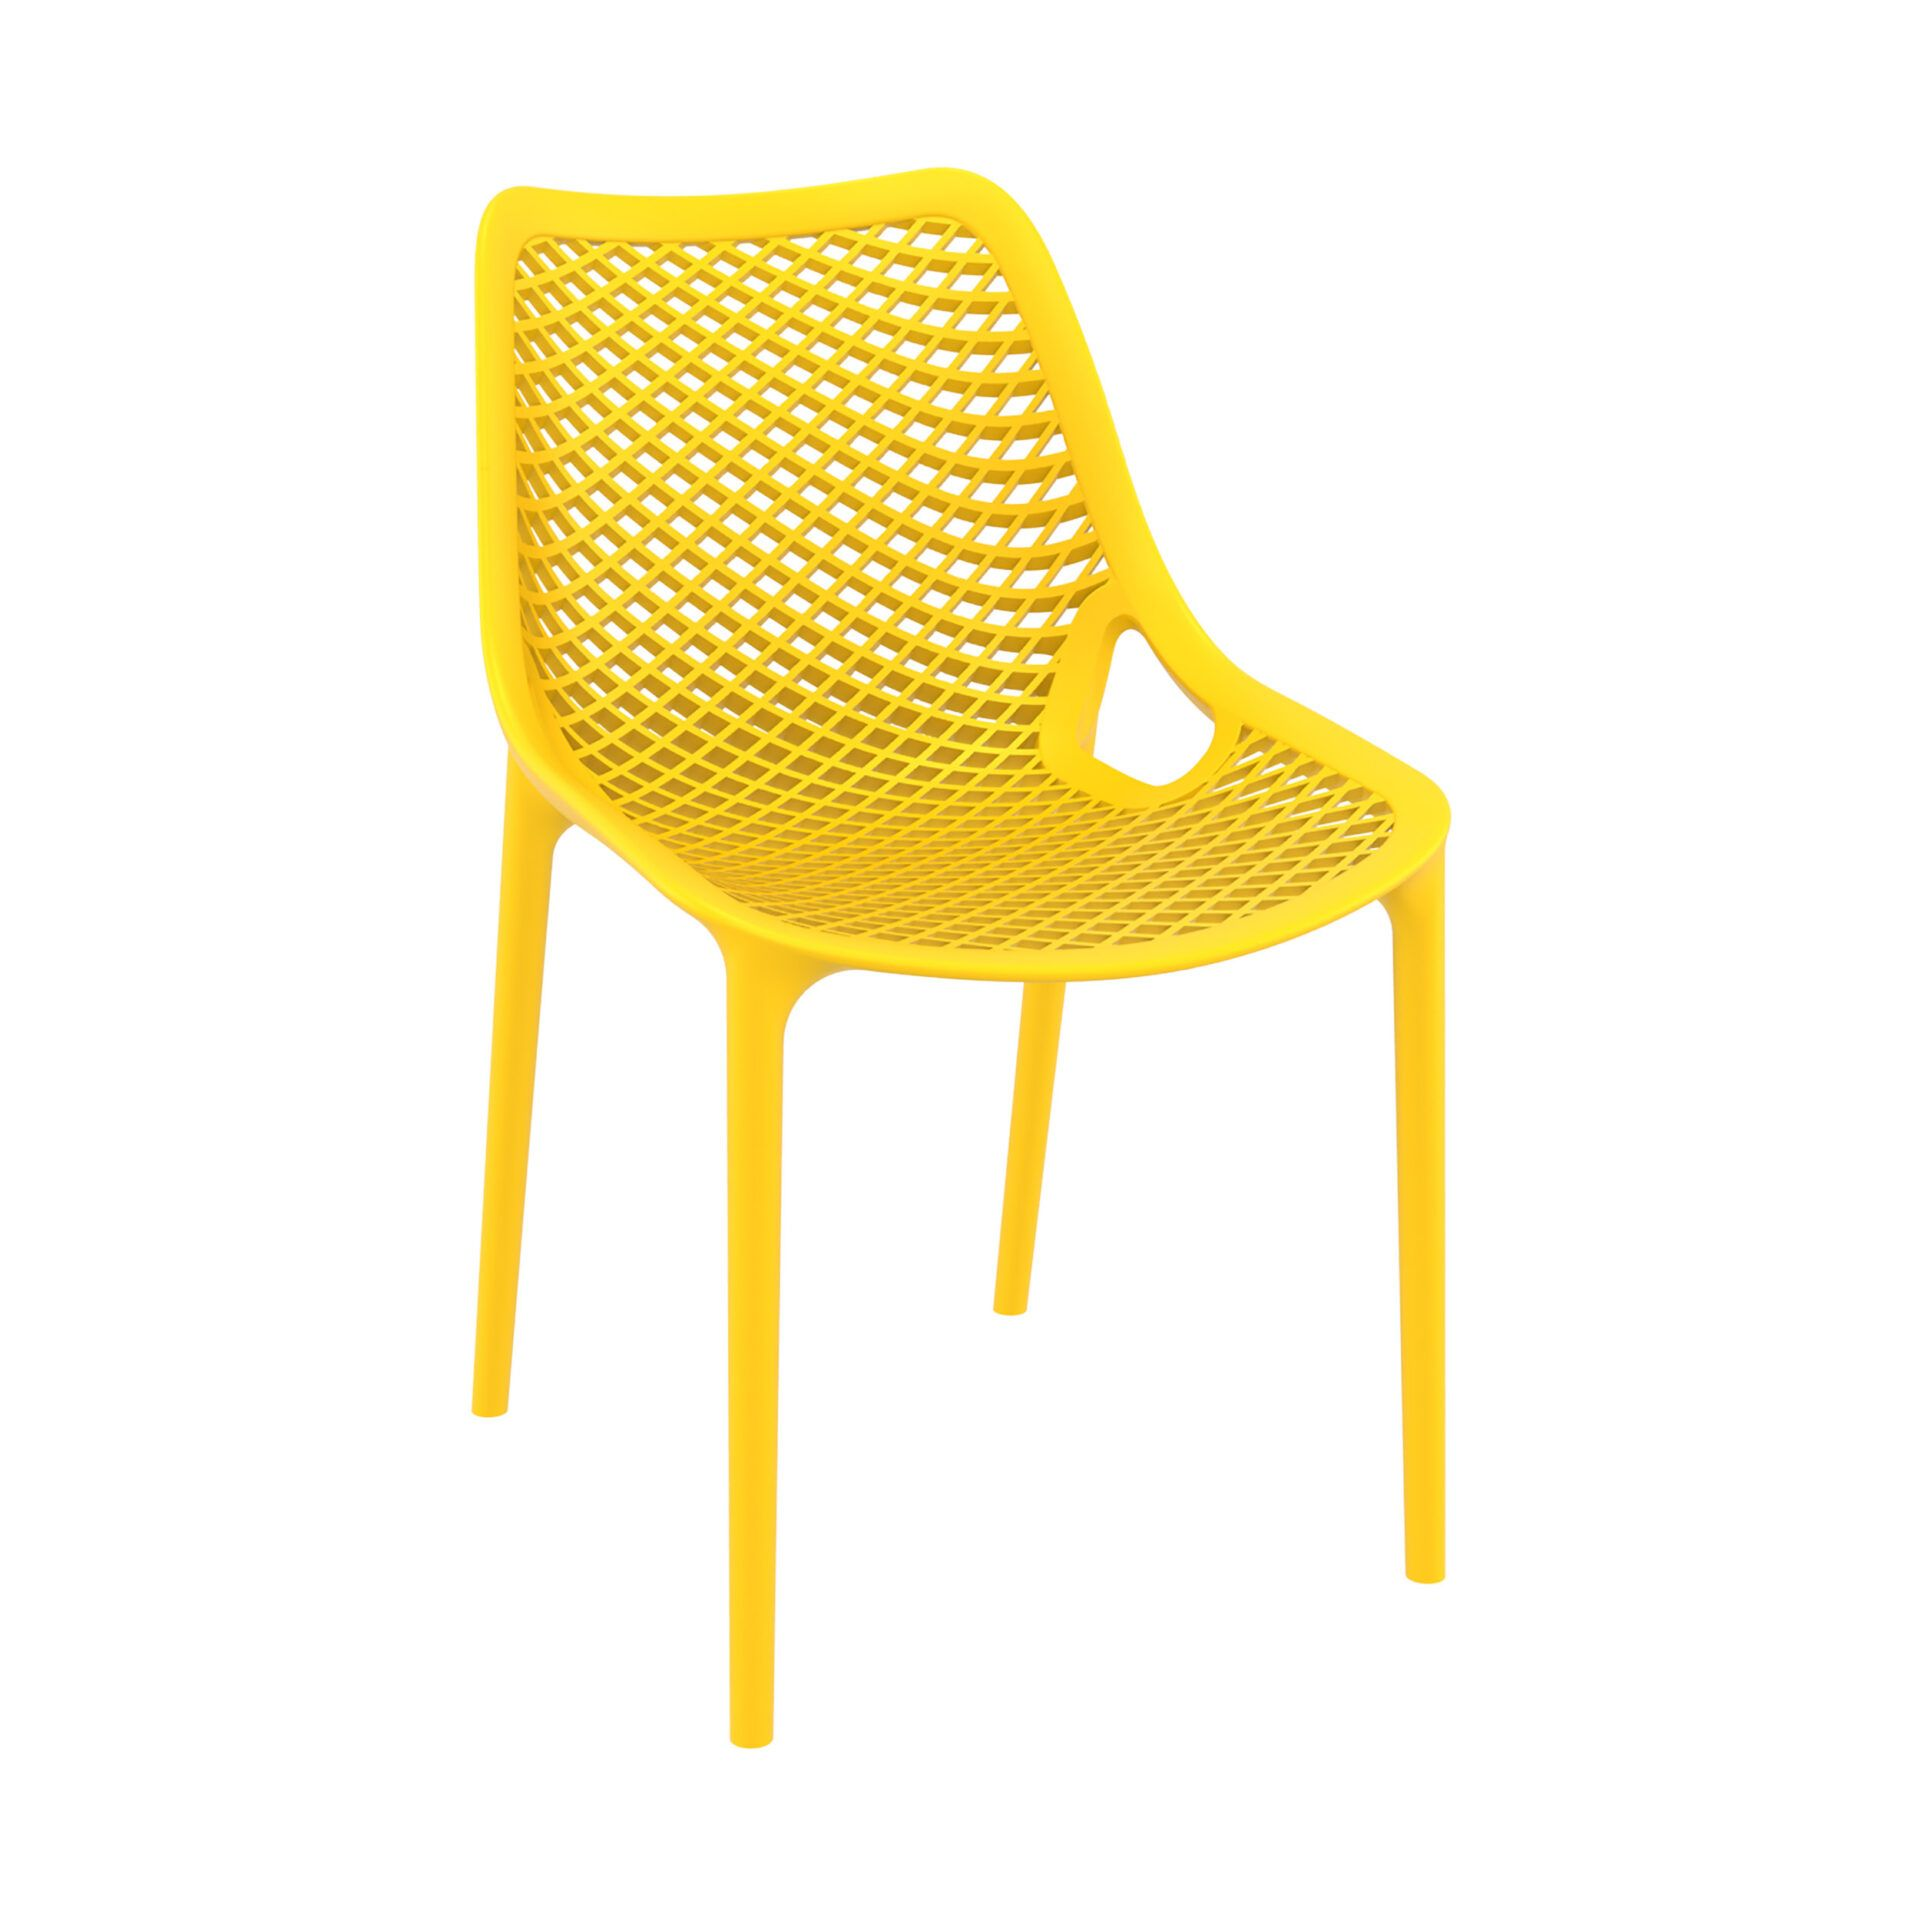 original siesta air chair yellow front side